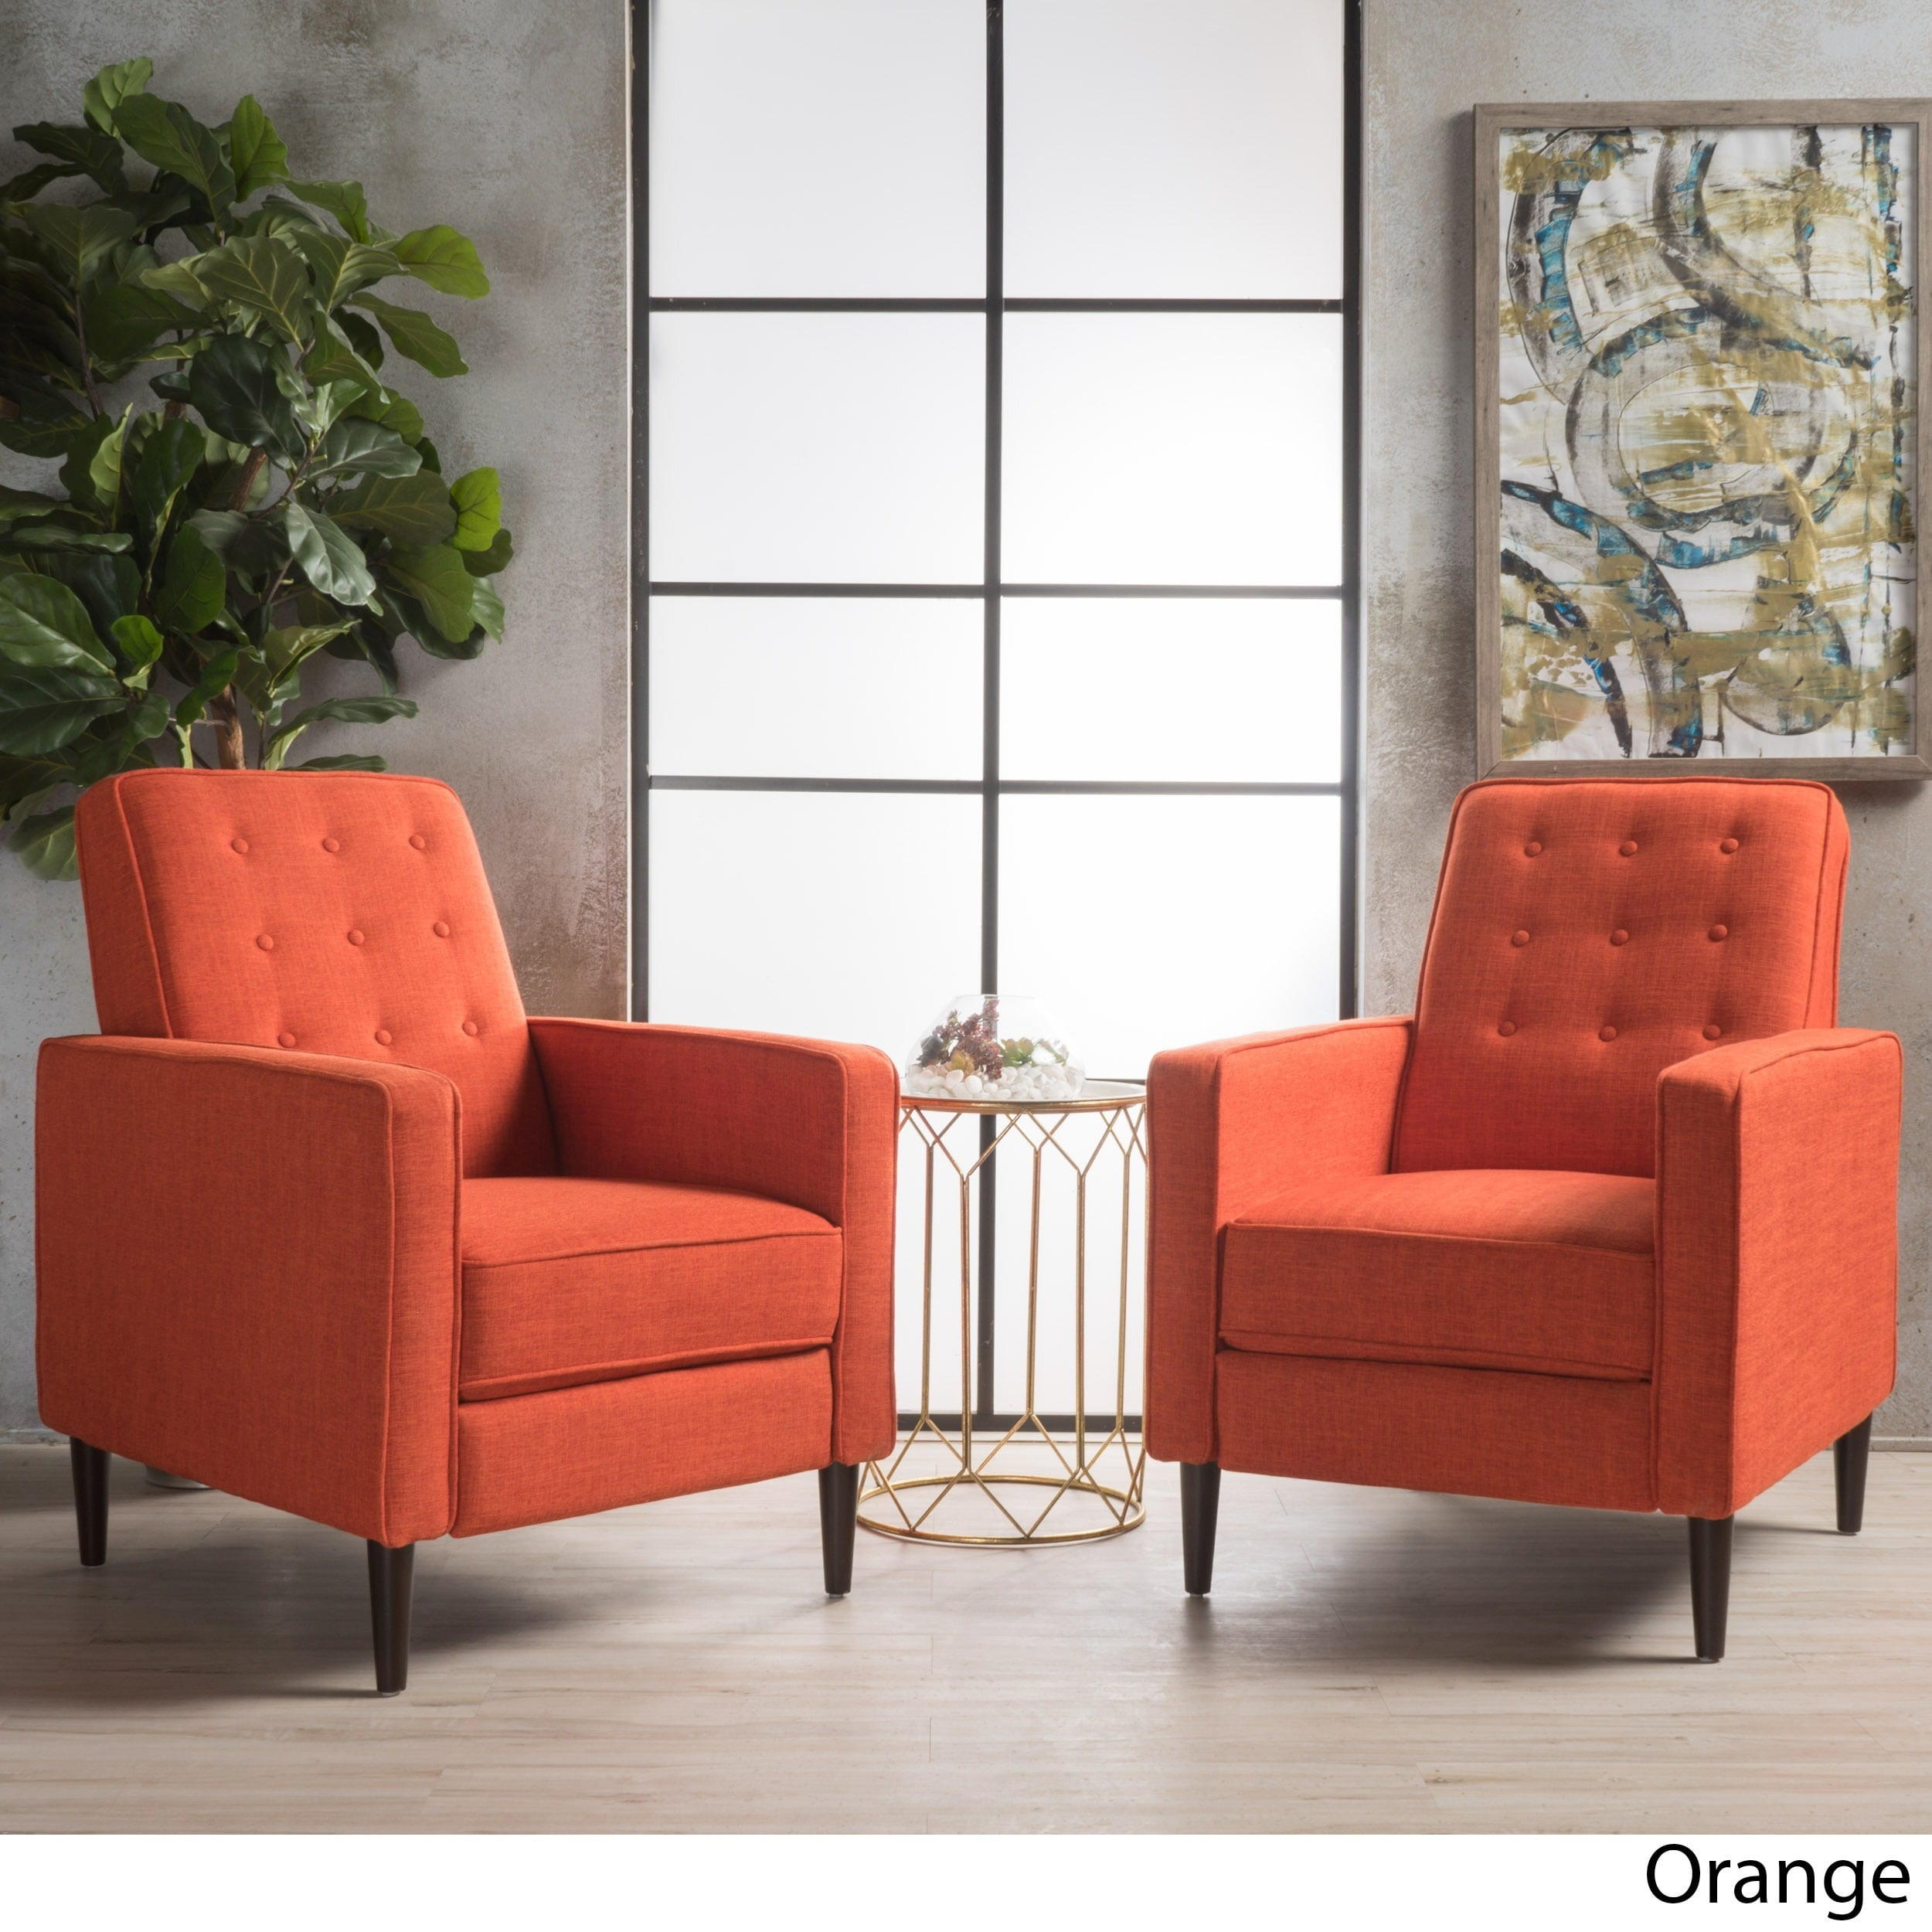 Mervynn Mid Century Fabric Recliner Club Chair Set Of 2 By Christopher Knight Home On Free Shipping Today 20603810